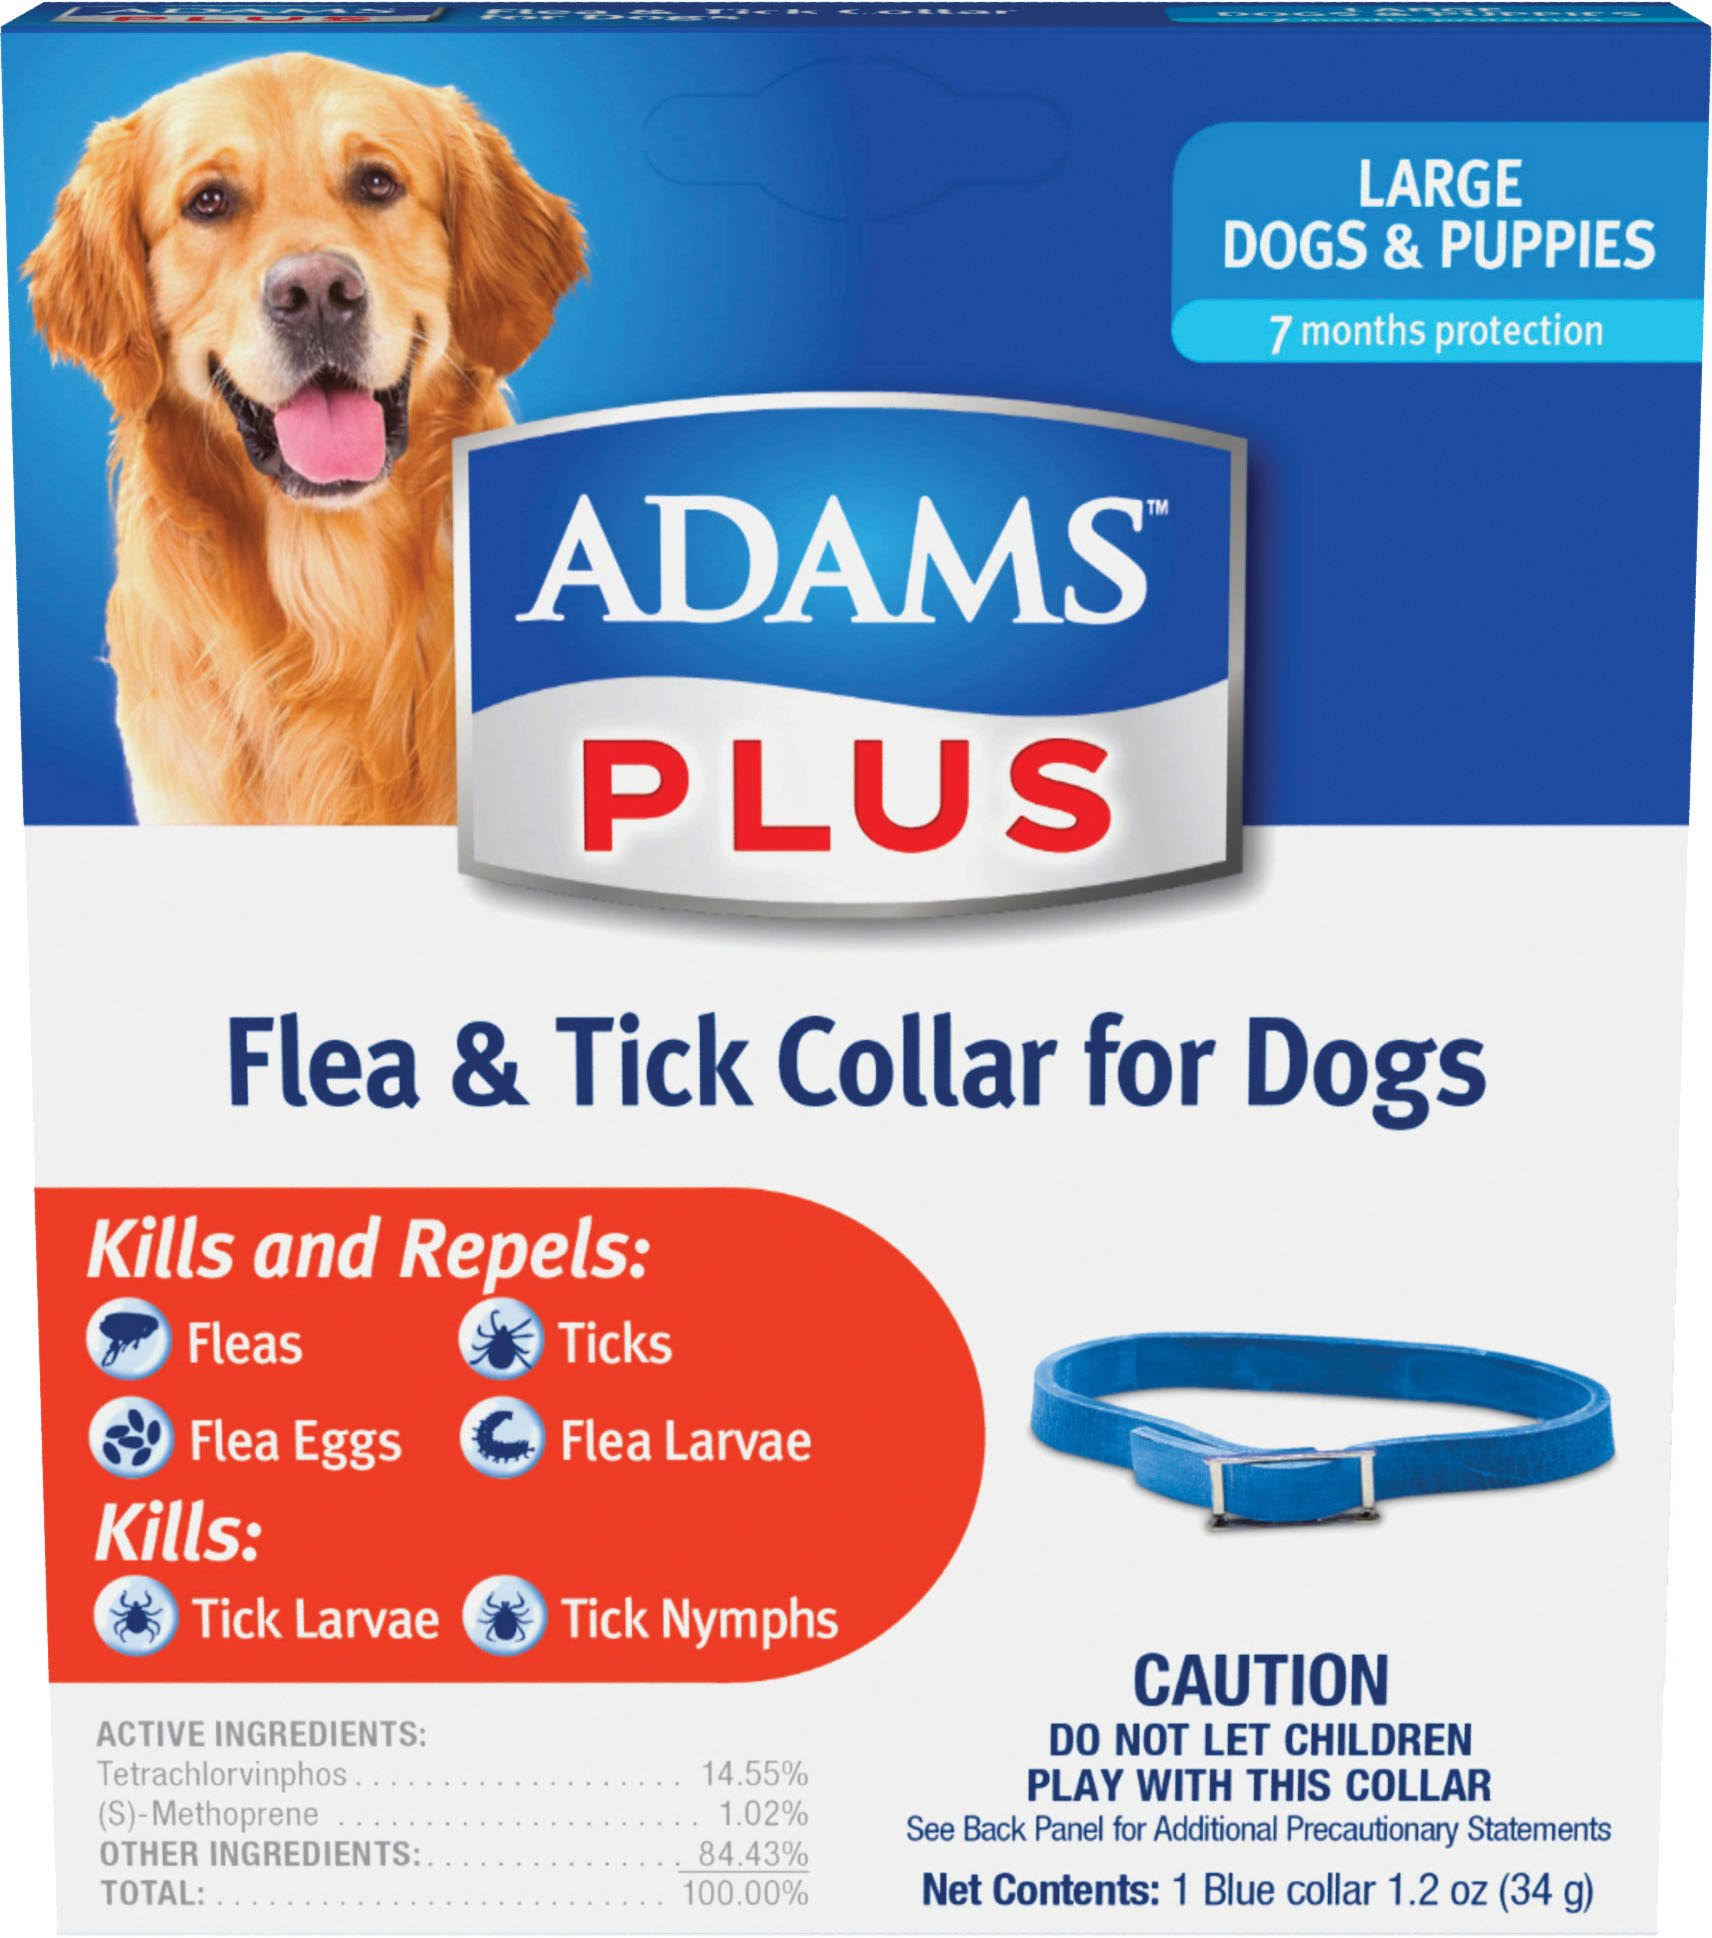 Adams Plus Flea & Tick Collar For Dogs - Large